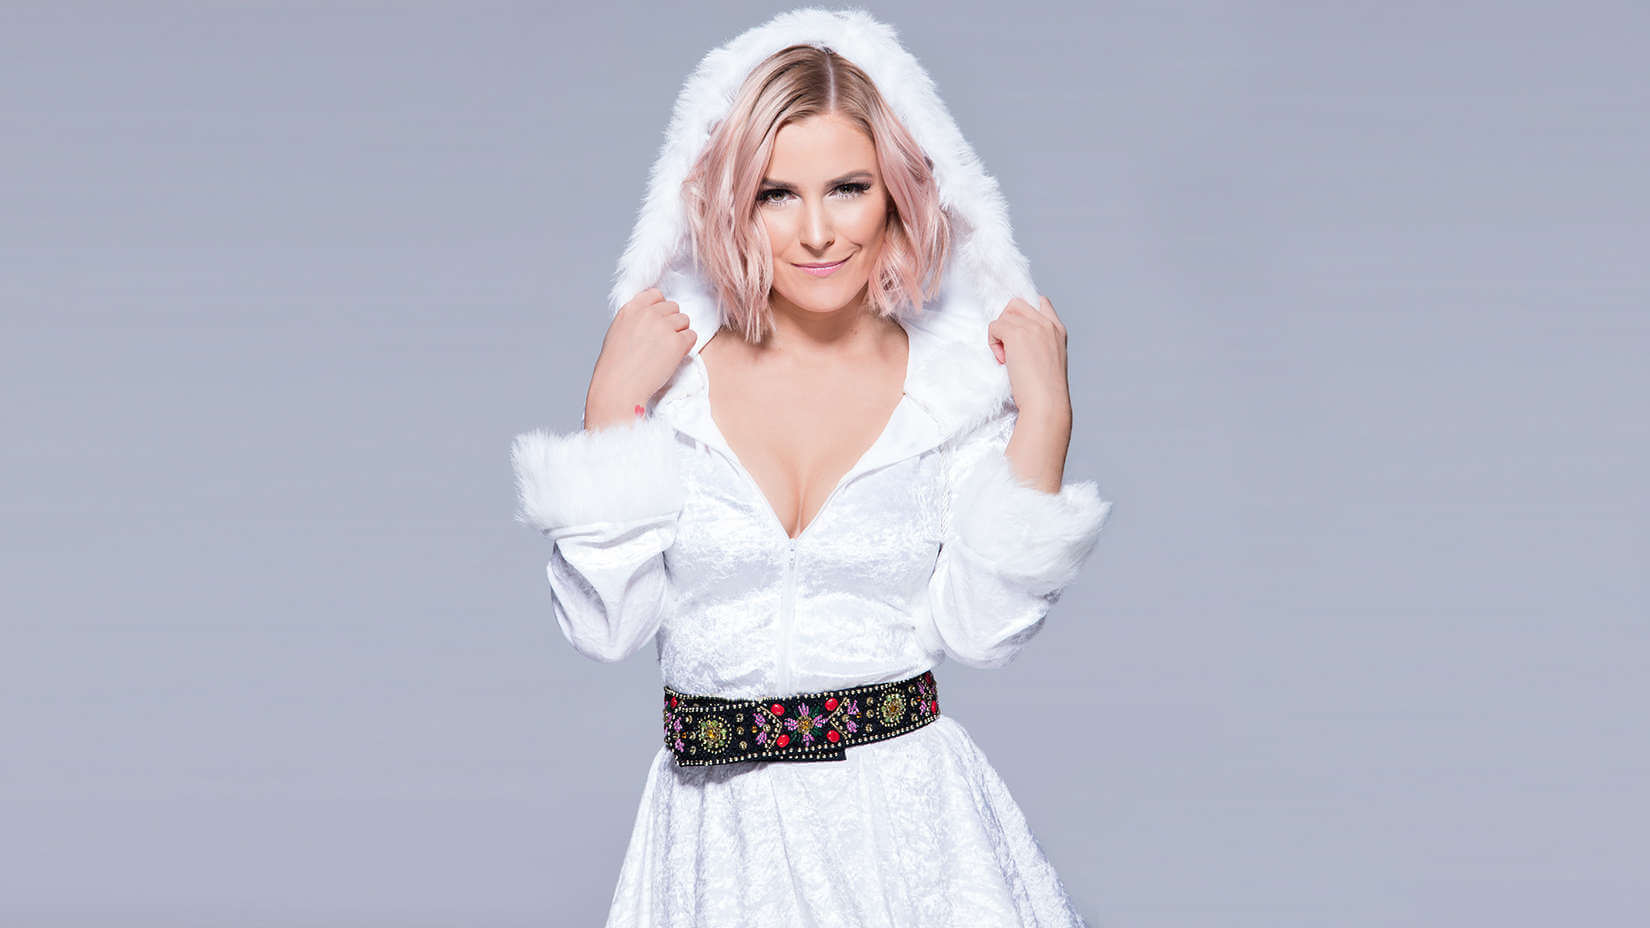 Renee-Young-hot-pic-2